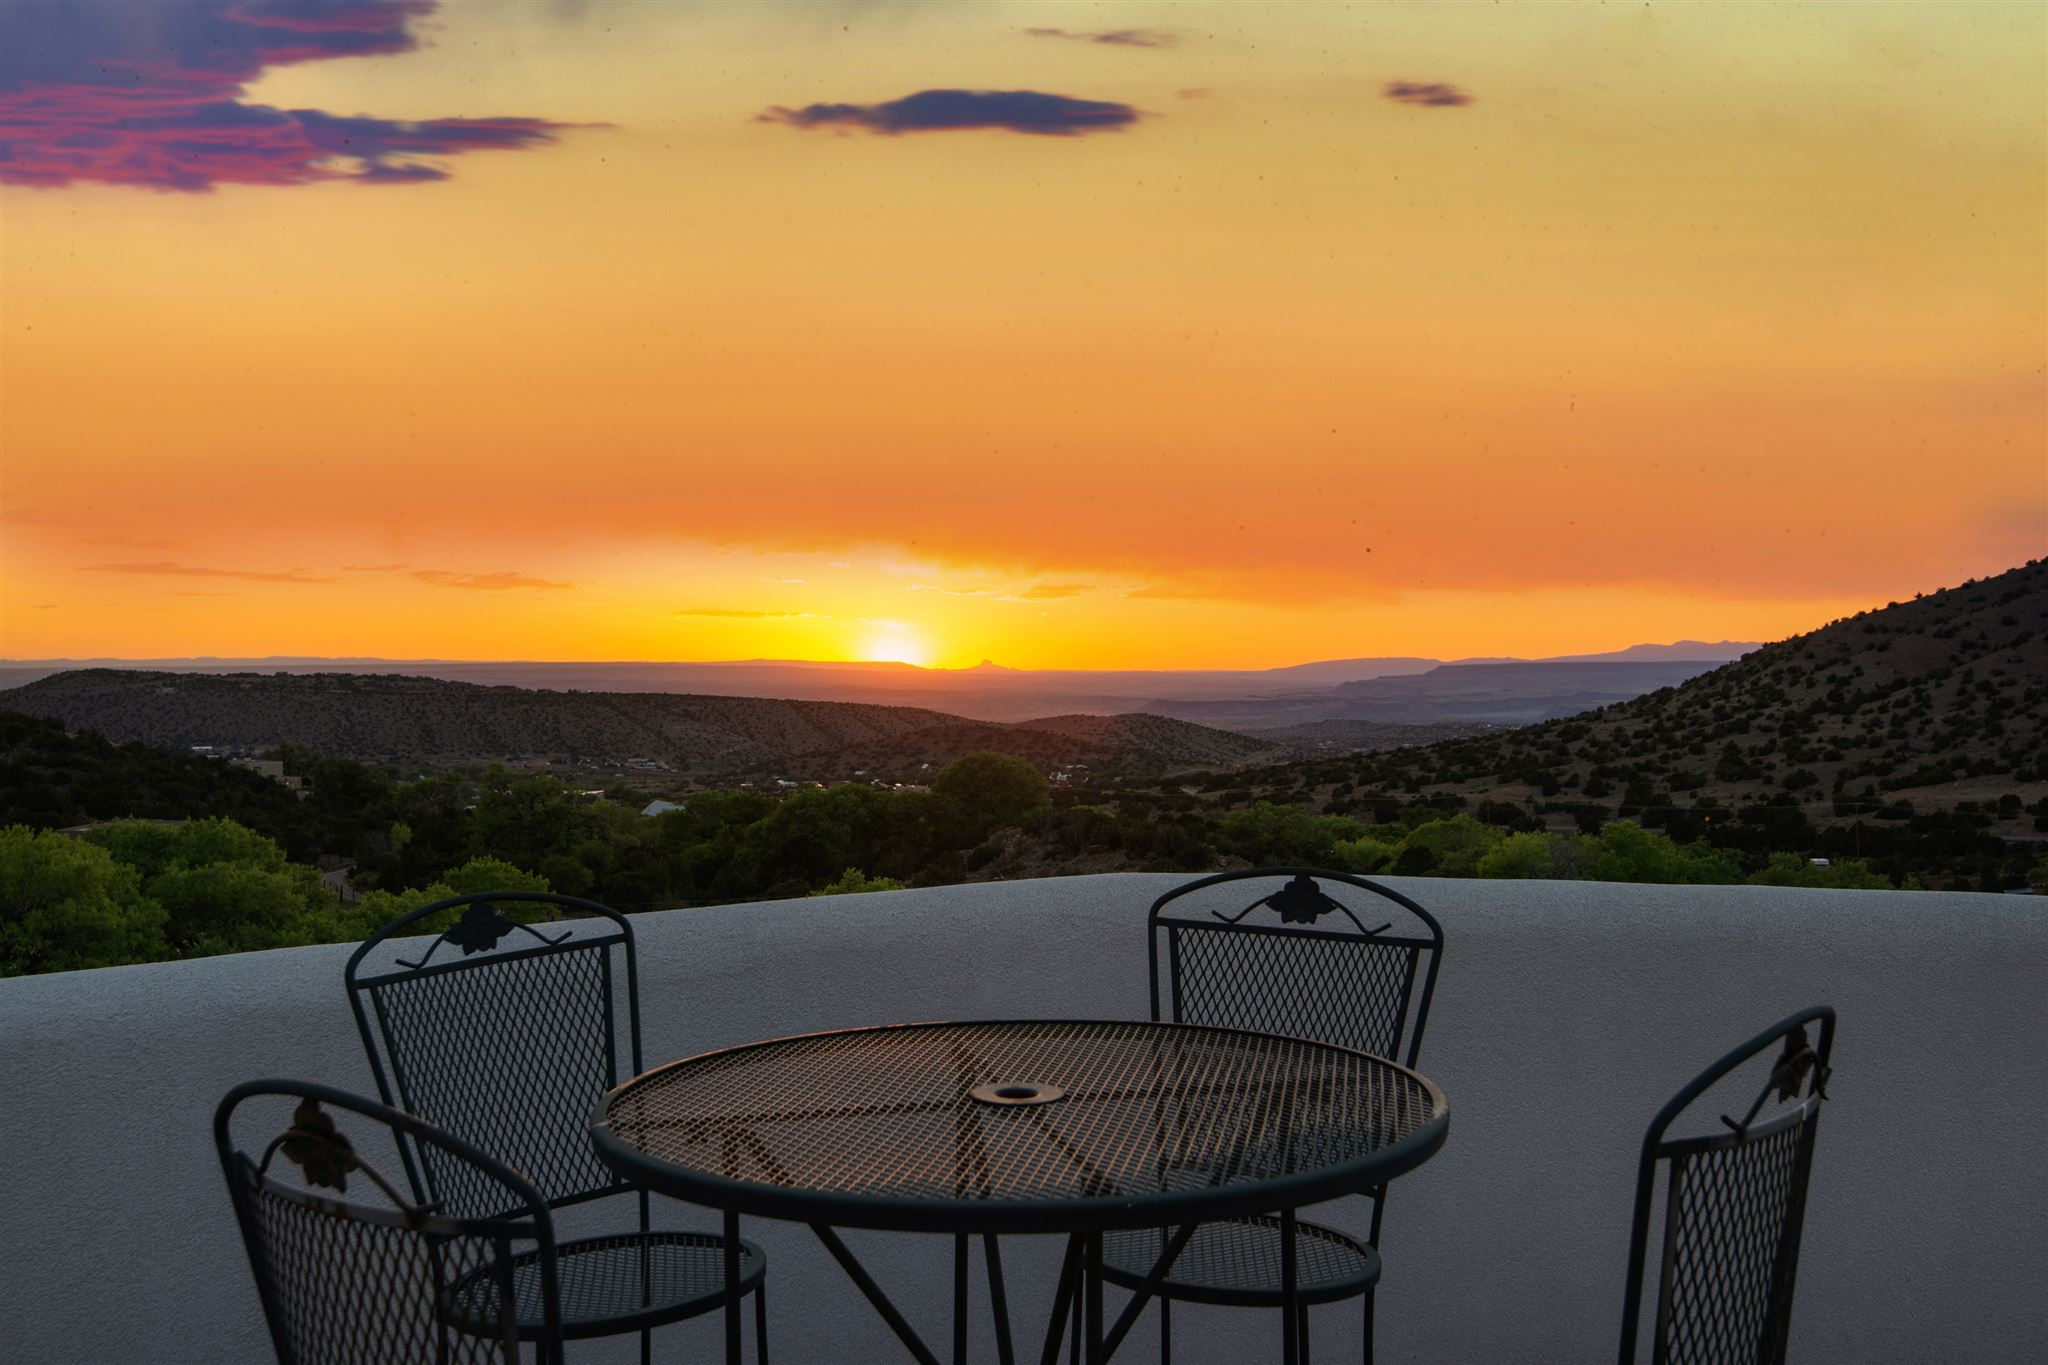 Nestled in the foothills of beautiful Placitas, this stunning custom-built home offers breathtaking, one-of-a-kind views of Cabezon Peak, the Rio Grande River Valley, and the Sandias. A private and tranquil sanctuary that features rounded window walls and magnificent viewing decks to capture the spectacular views that surround this captivating property. Beginning with its gated courtyard entry and continuing throughout the home, the builder's masterful architectural details, including vigas and beams, are spectacular!  This magnificent property features a formal living area with a kiva fireplace; a formal dining area with a coved beam ceiling and gorgeous hardwood floors; an open concept family room integrated with a spacious kitchen featuring granite countertops and spectacular Cabezon views; a separate downstairs office; a large master suite with tongue and groove ceilings, and a large walk-in closet, Jacuzzi tub and views of the Cottonwoods of Del Oso; and two ample size guest bedrooms with an additional full size bathroom. Easy commute to both Albuquerque and Santa Fe. With lots of natural light throughout the home and multiple living spaces that feature the beautiful outdoor surroundings, the peace and tranquility of life in Placitas can be yours!